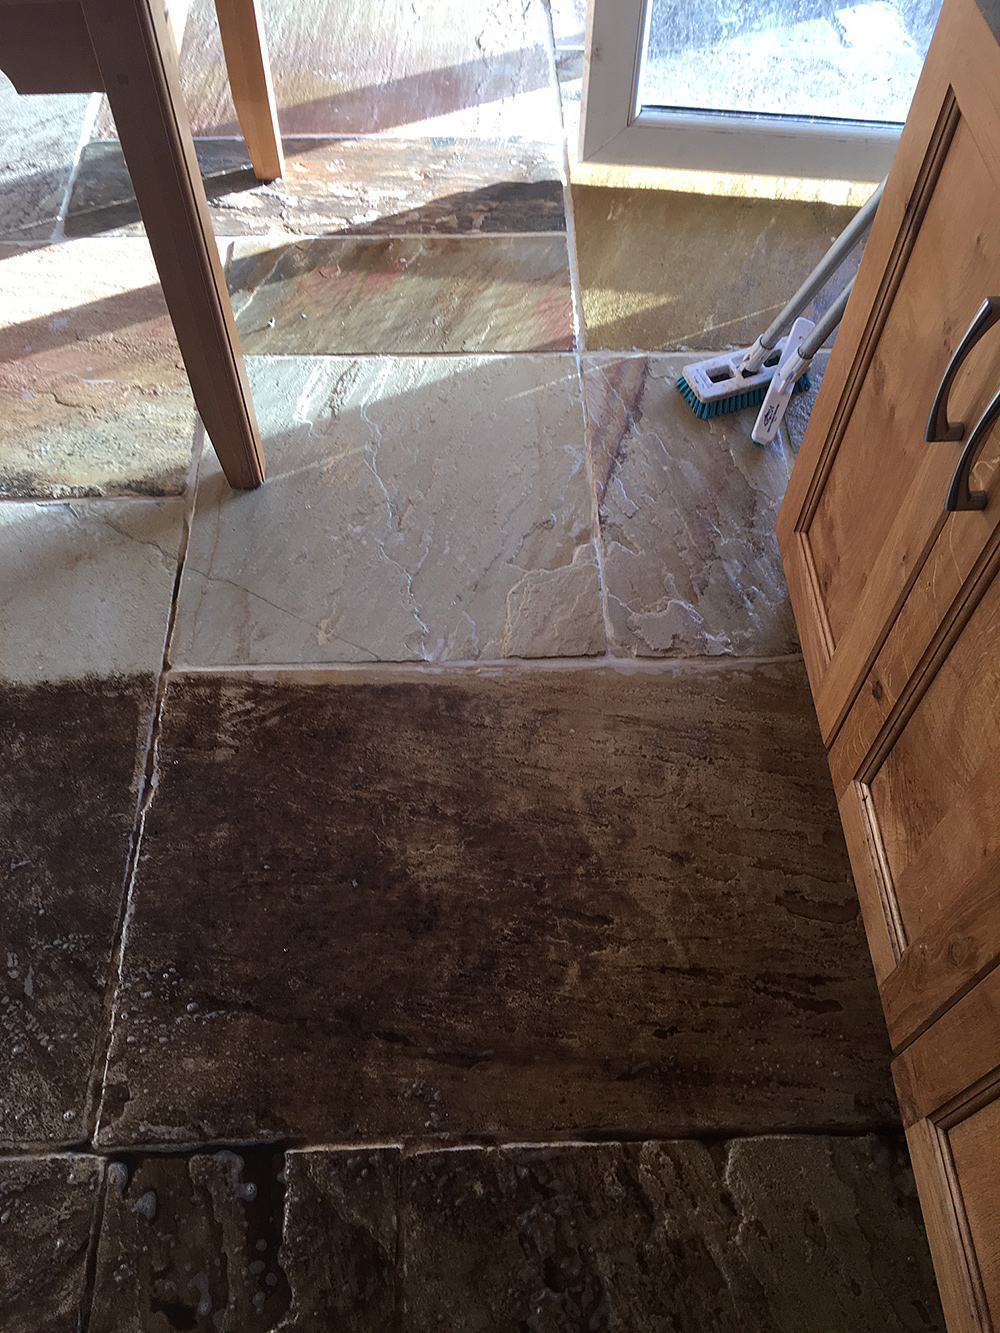 Stone Tiled Flooring Is Naturally Porous Water Collects Creating A Hazardous Slippery Surface